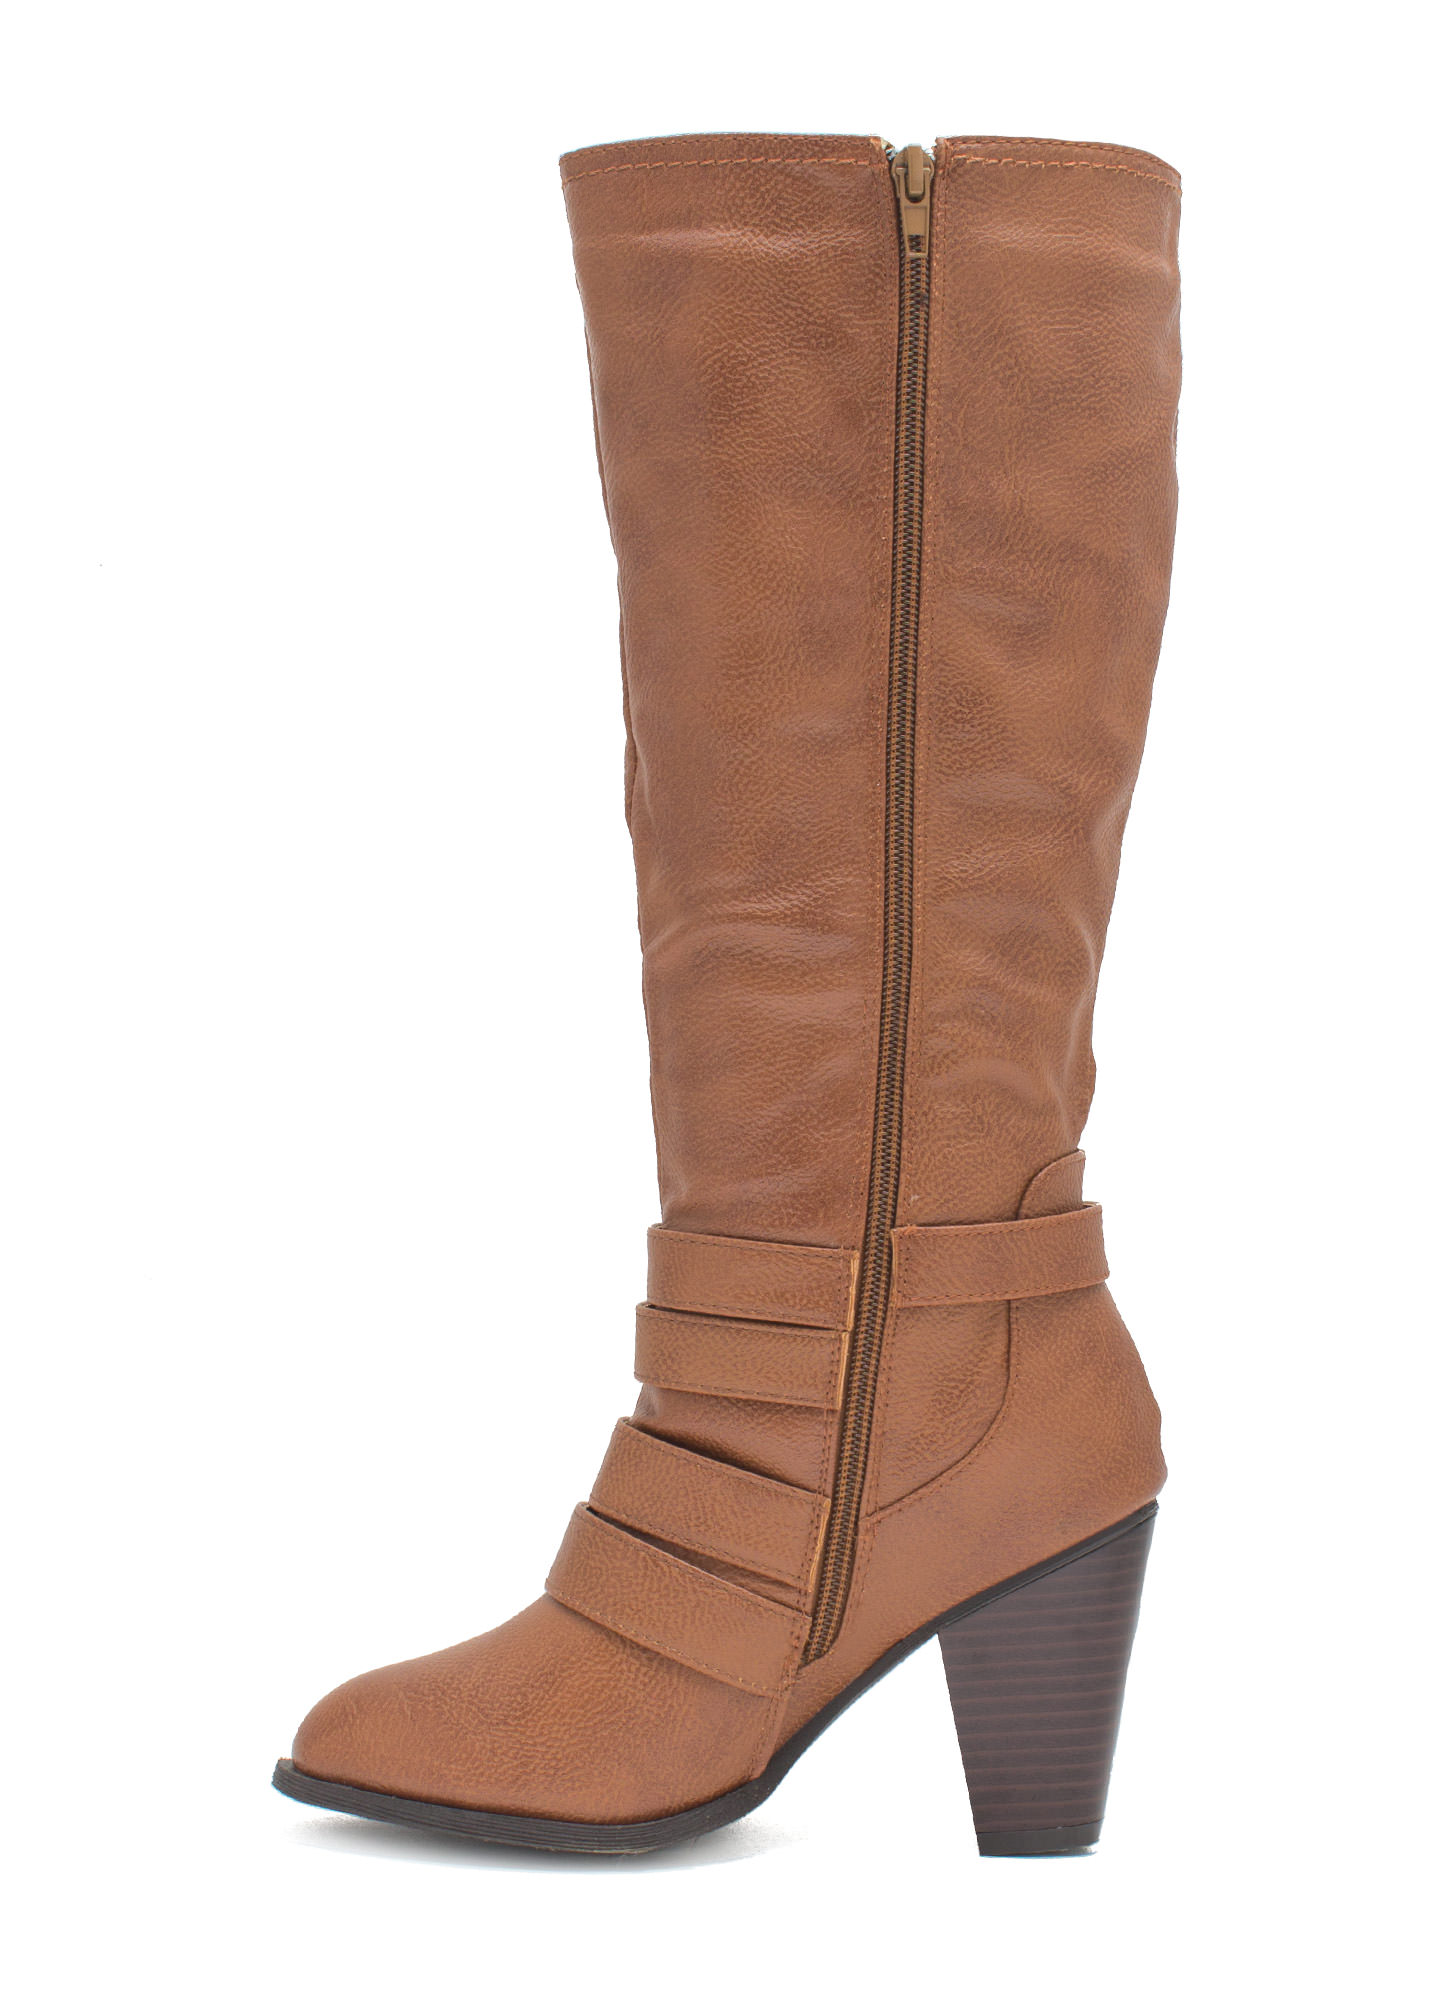 It's A Wrap Heeled Boots CHESTNUT